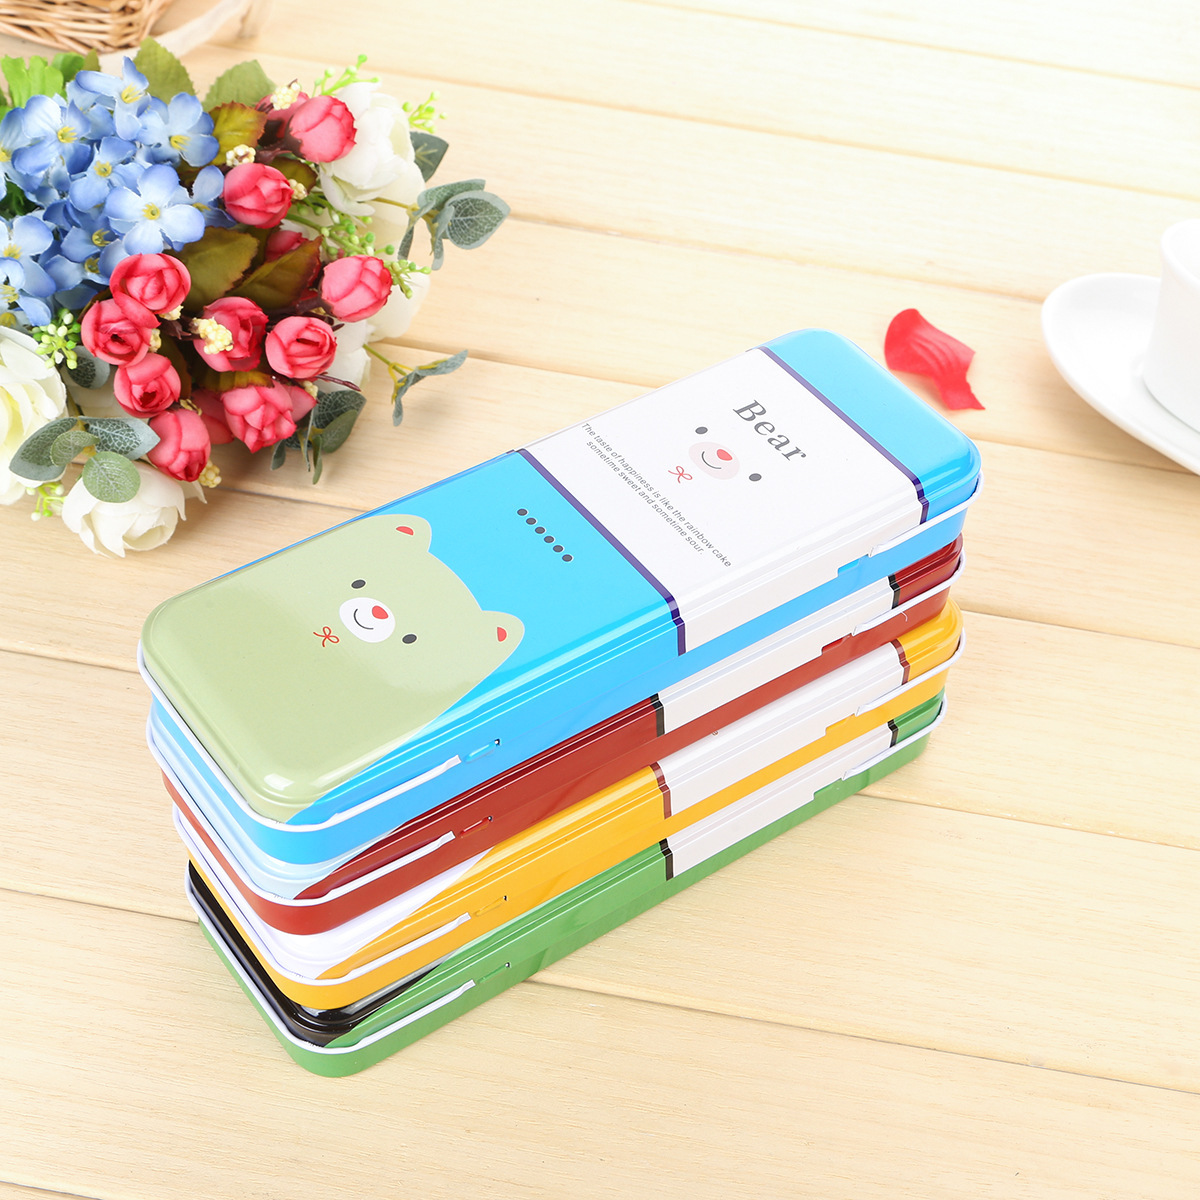 Decorate Pencil Case Online Buy Wholesale Tin Pencil Box From China Tin Pencil Box